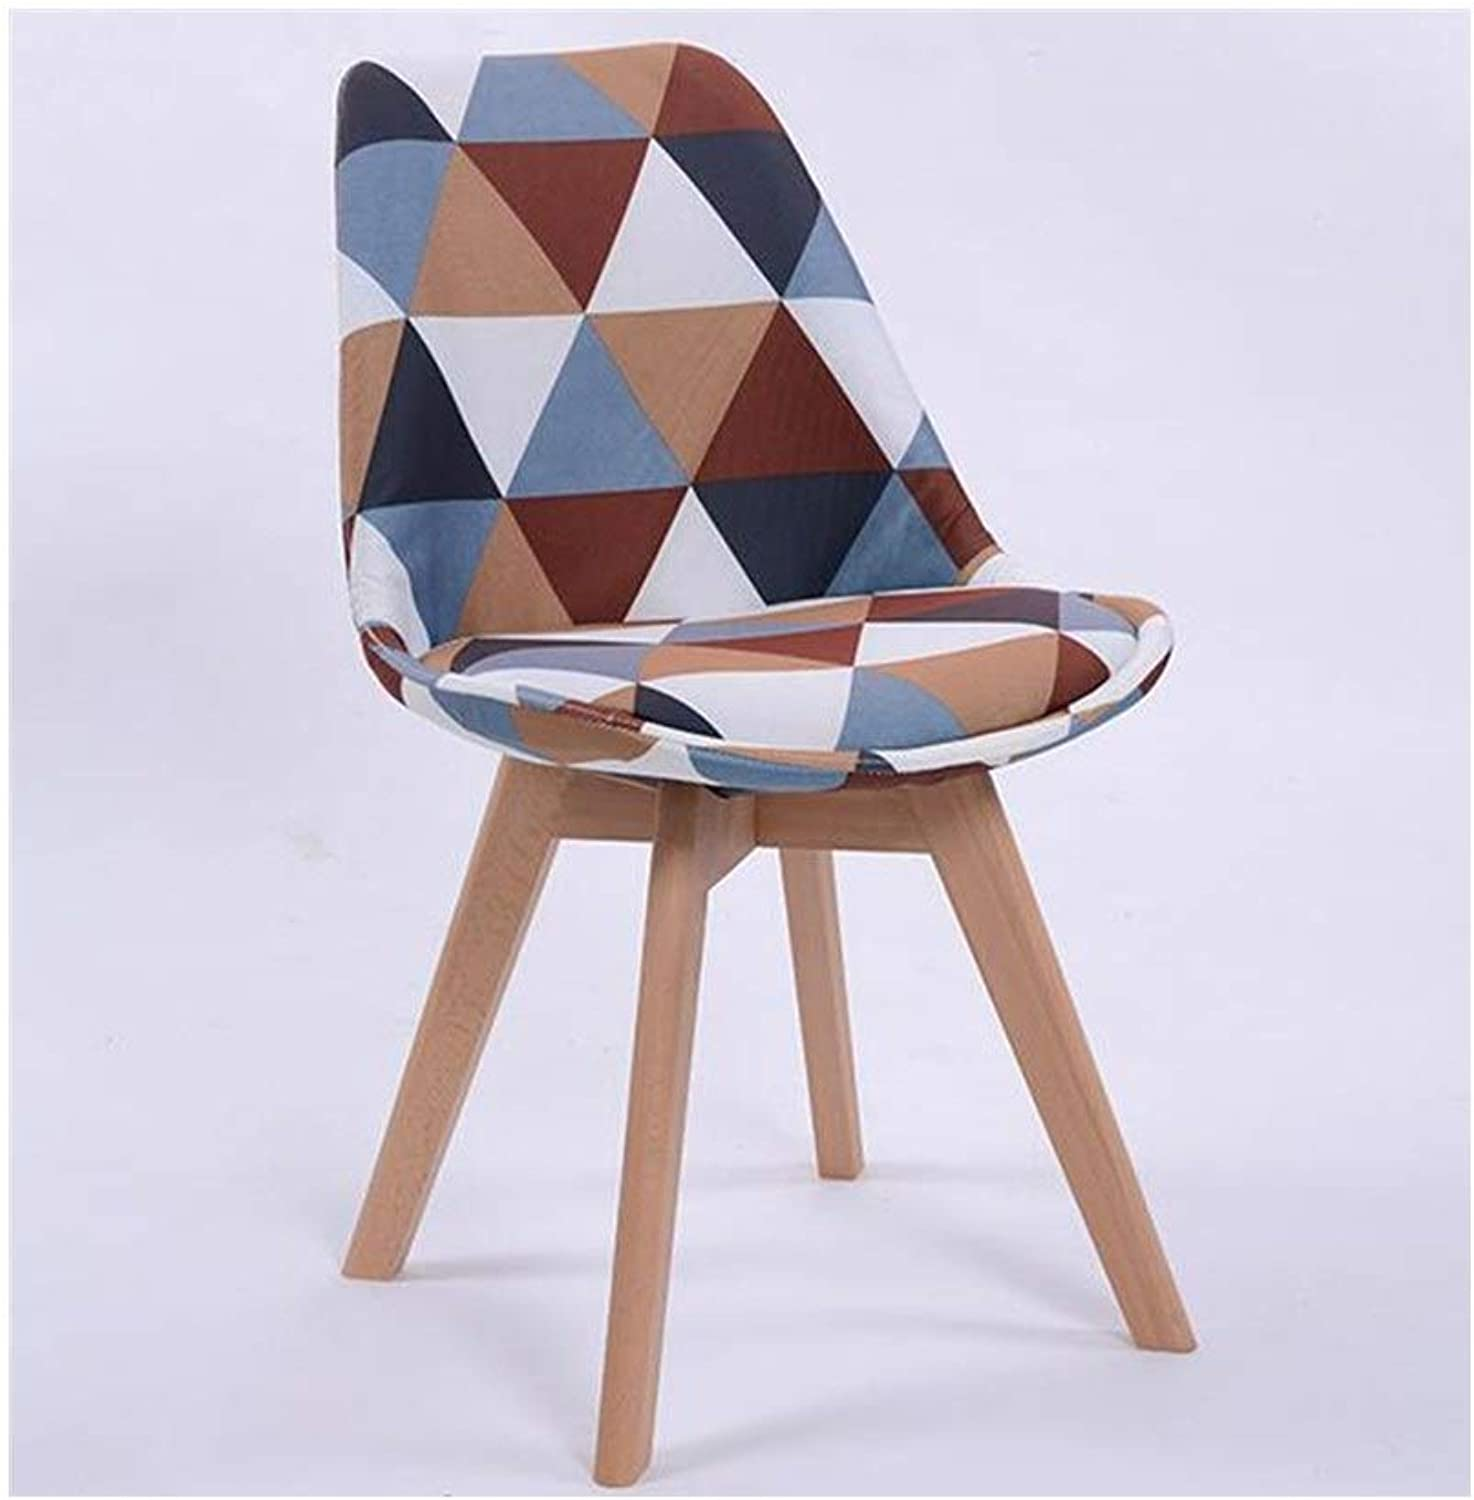 AJZGFDining Chair, Kitchen Chair Nordic Wood Dining Chair, Creative Computer Chair Modern Minimalist Office Stool Back Adult Leisure Chair (color   A)